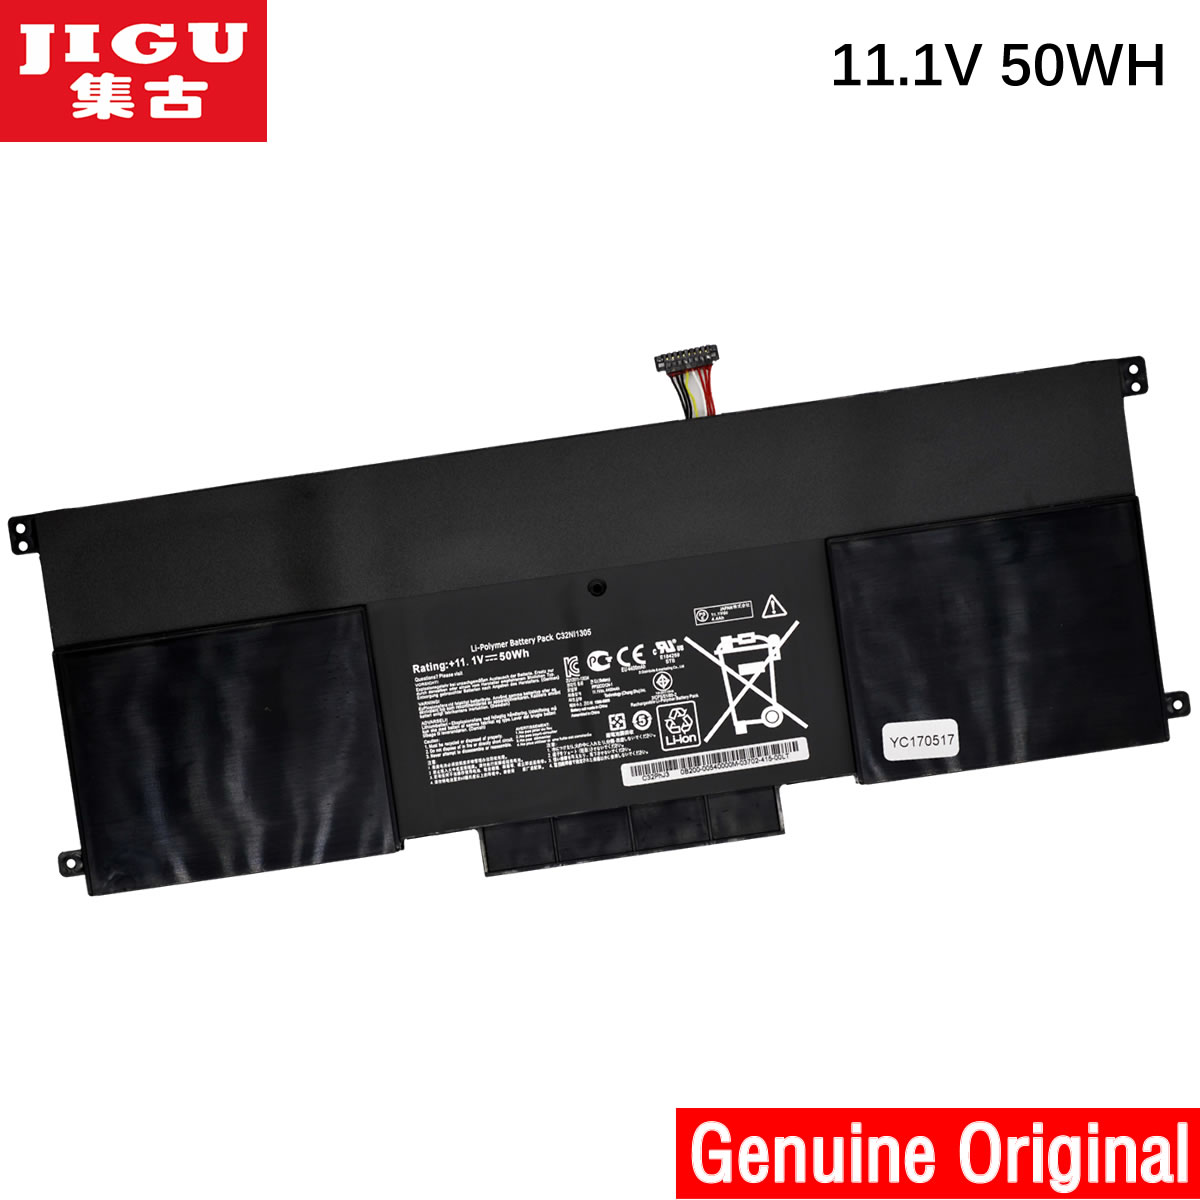 JIGU laptop battery FOR ASUS C32N1305 C32NI305 UX301LA FOR Zenbook UX301L UX301LA UX301LA4500 jigu laptop battery for dell 8858x 8p3yx 911md vostro 3460 3560 latitude e6120 e6420 e6520 4400mah